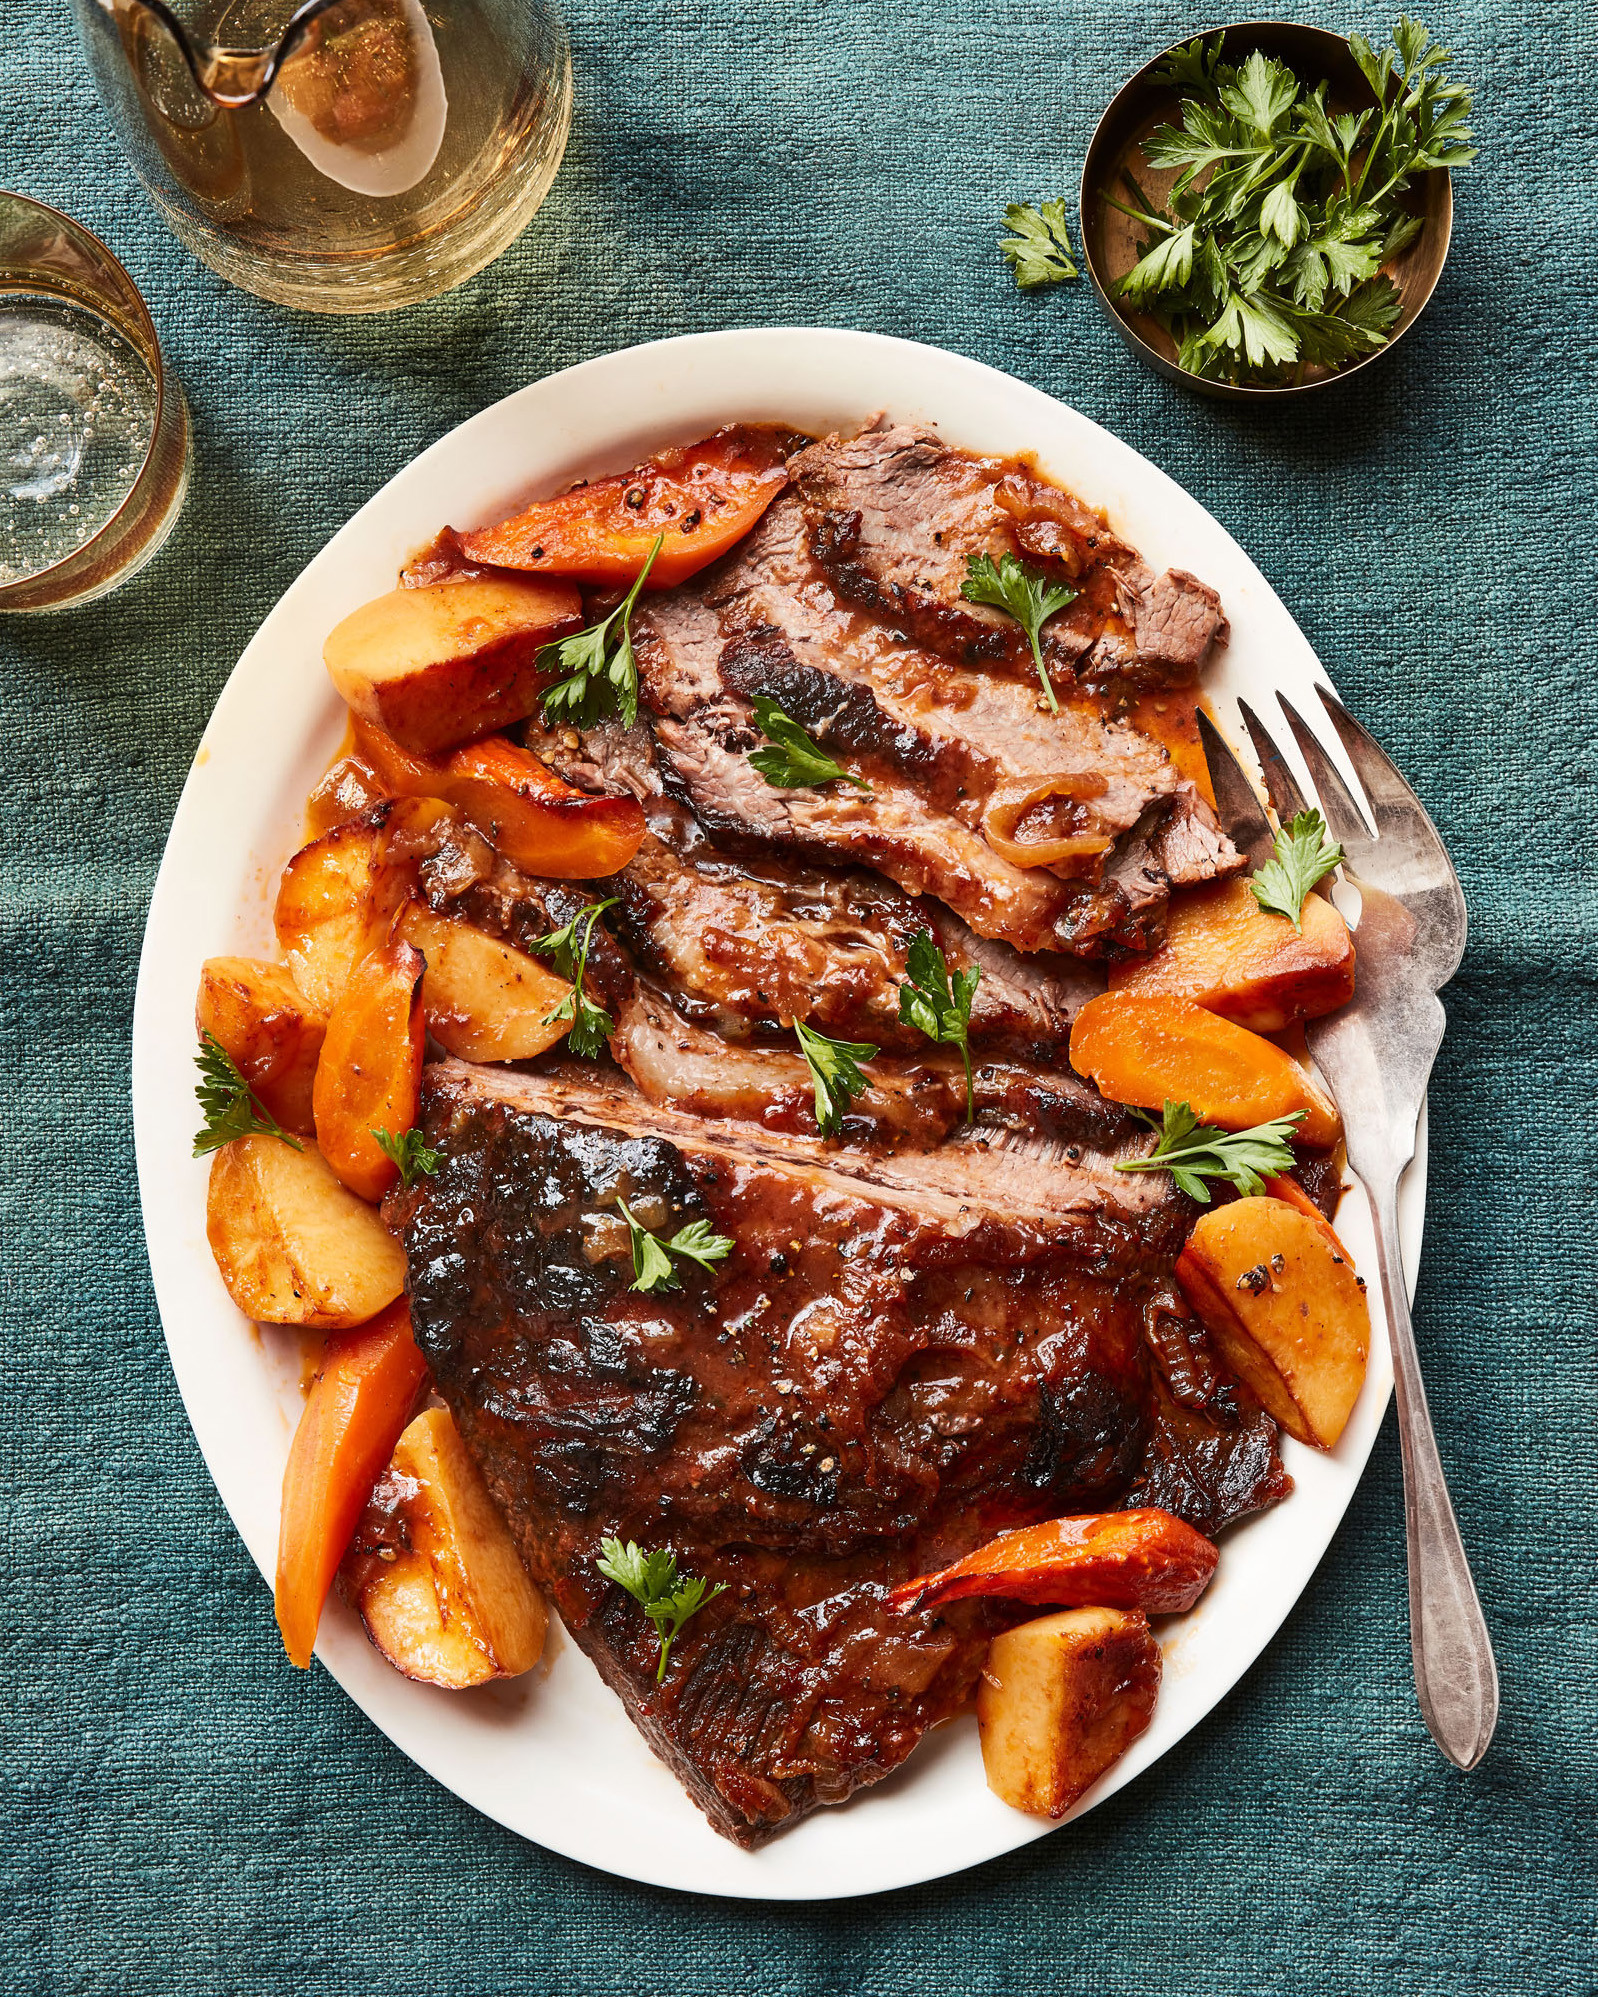 sweet-and-sour brisket on platter with carrots and potatoes